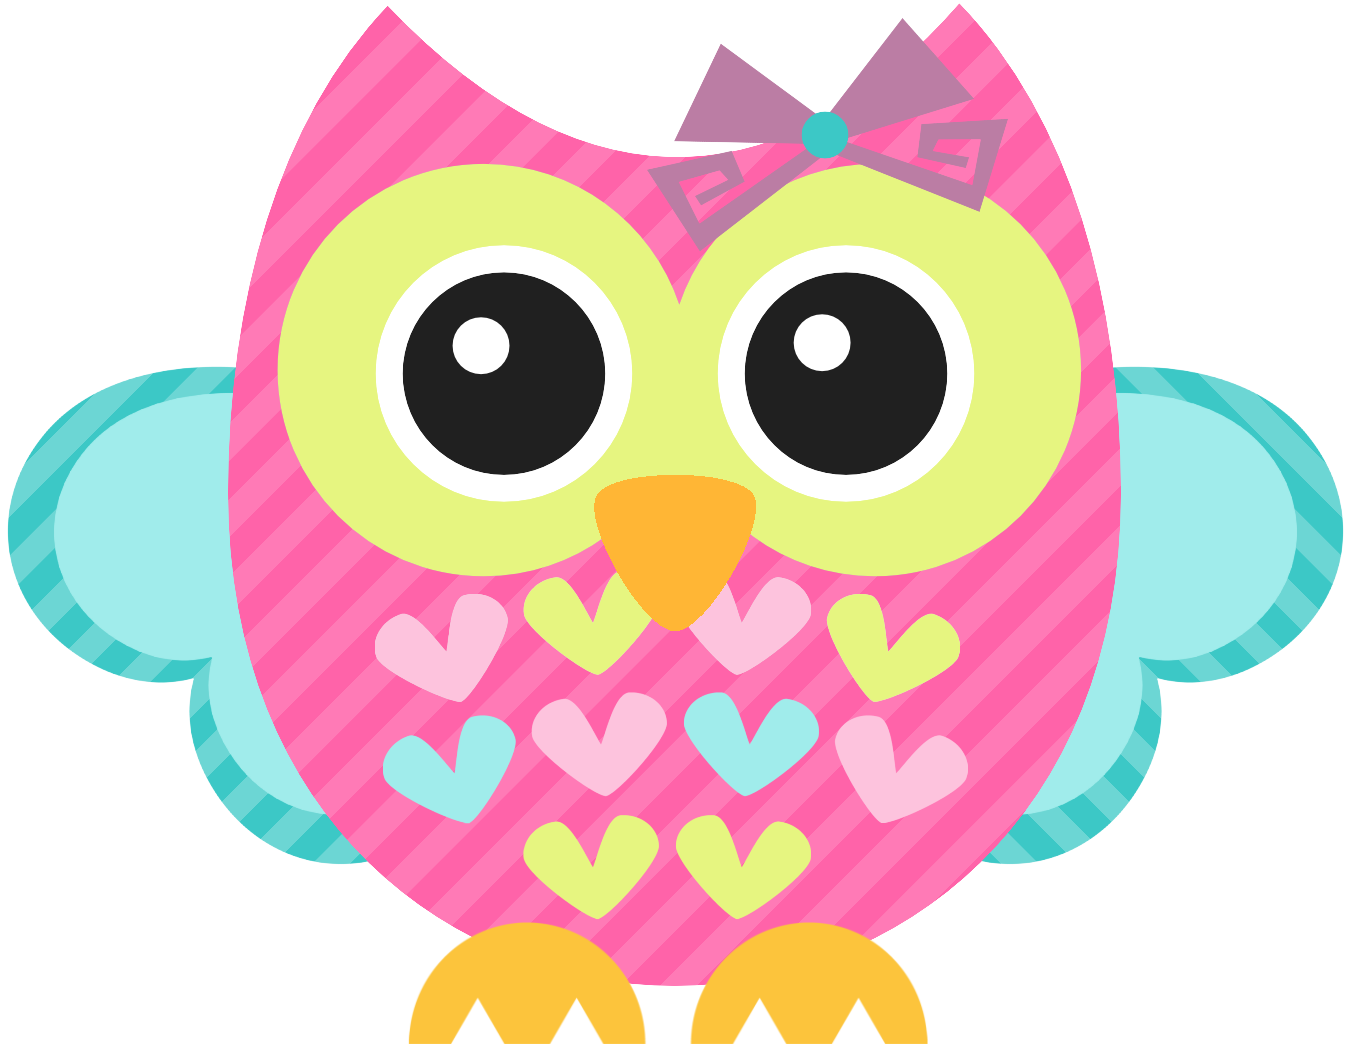 Cute owl on tree clipart clipart free download AVES & PASSÁROS & CORUJAS ETC … | Owls | P… clipart free download